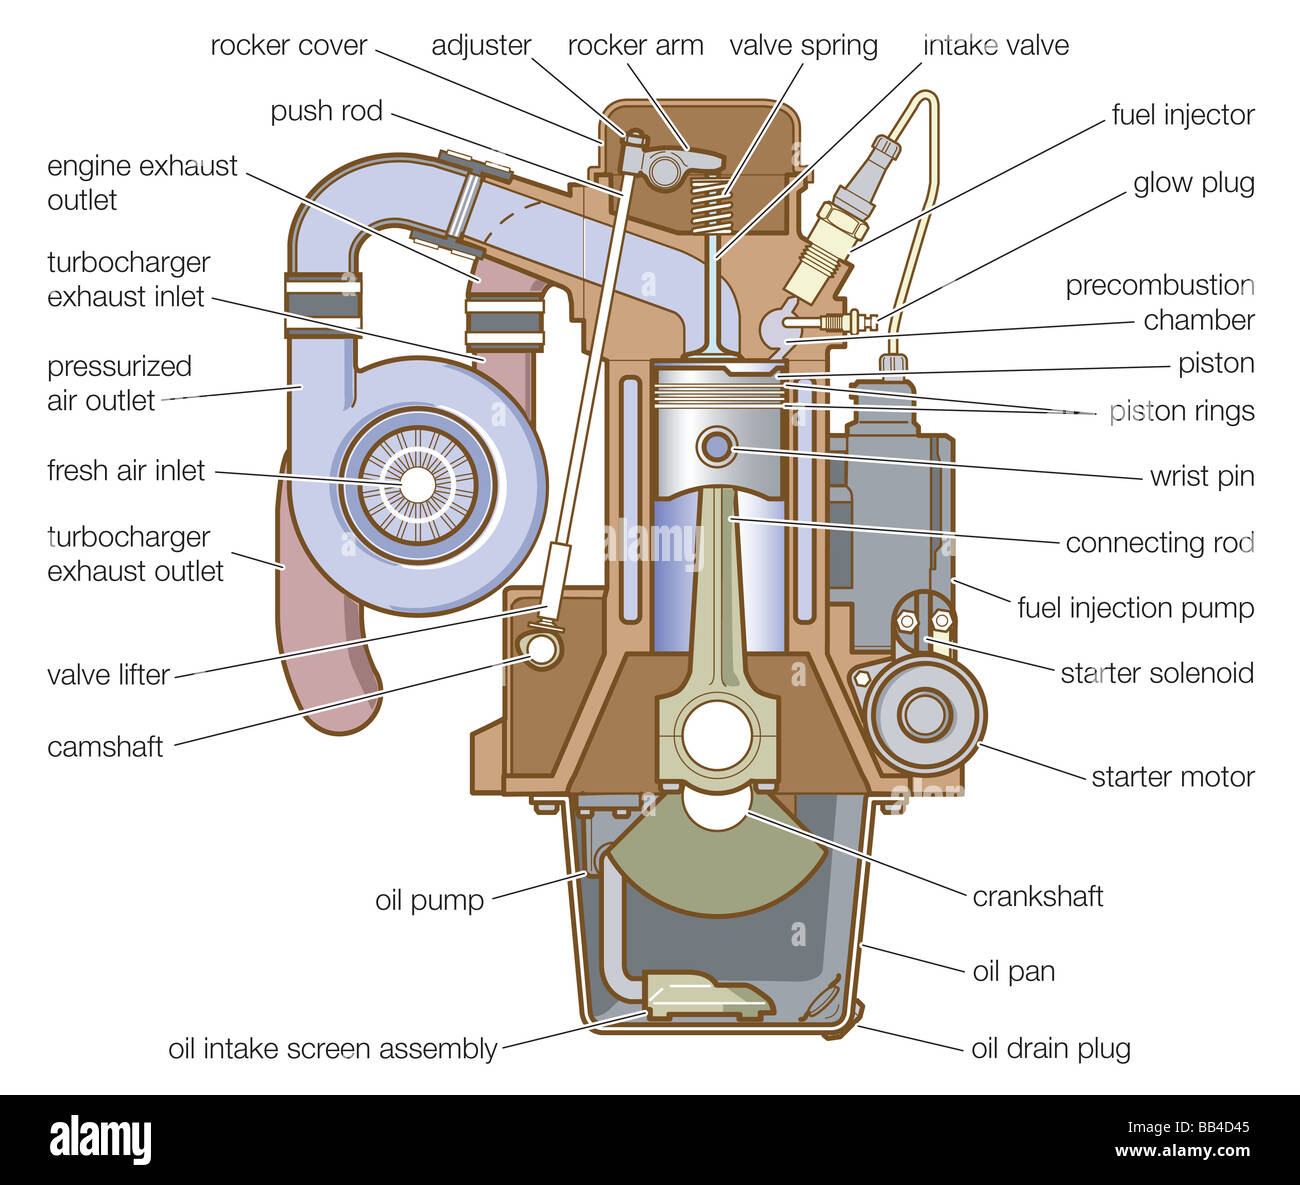 hight resolution of diesel engine equipped with a precombustion chamber